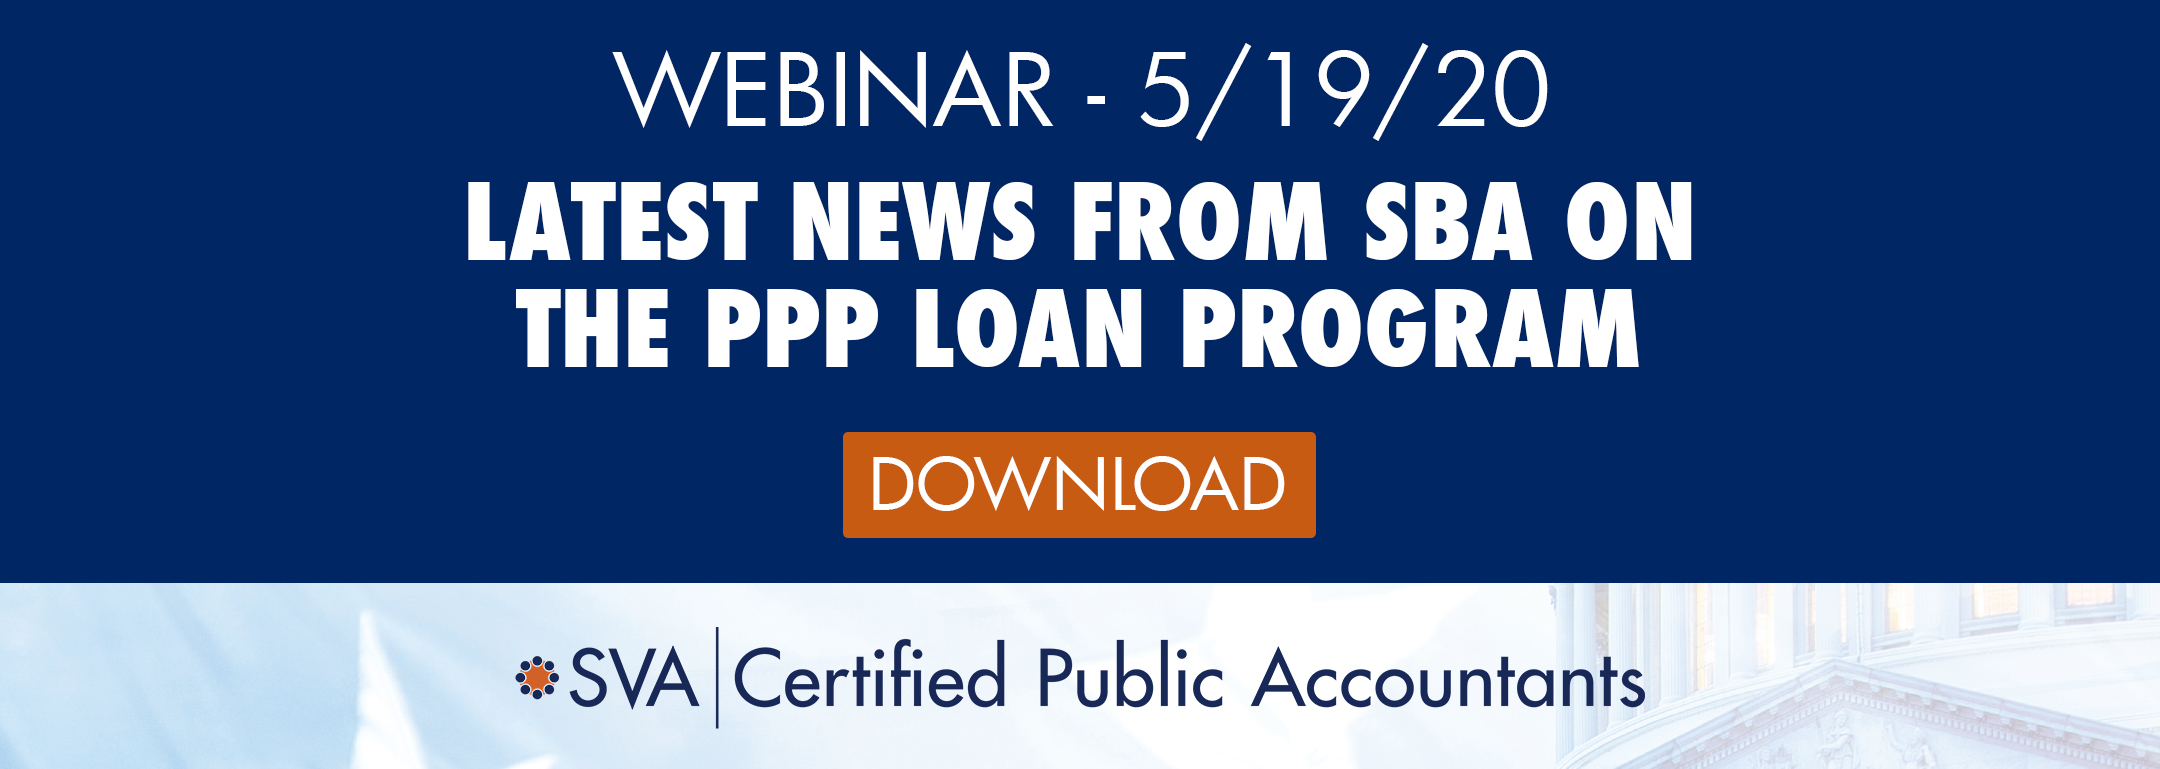 latest-news-from-sba-on-the-ppp-program-webinar-download